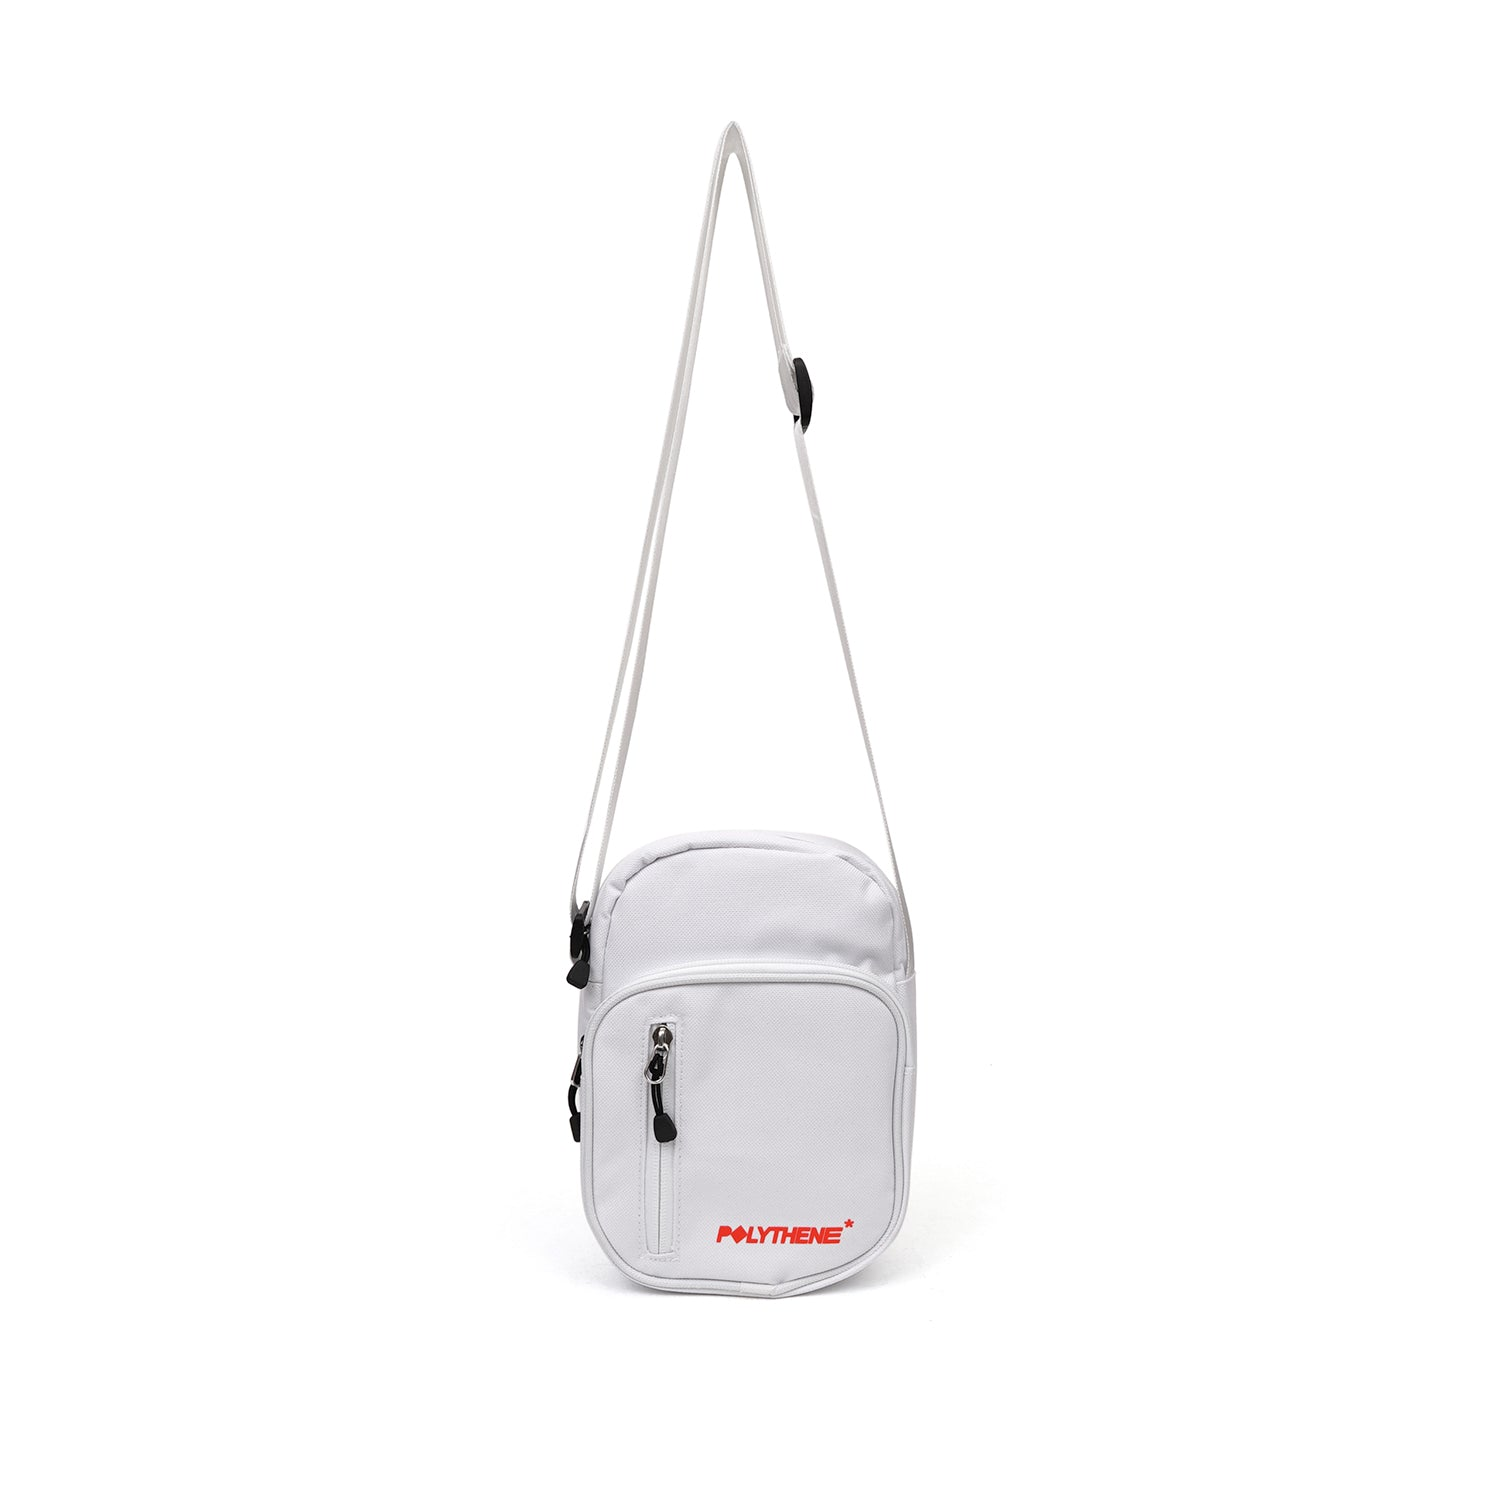 Polythene* Optics Shoulder Bag Grey